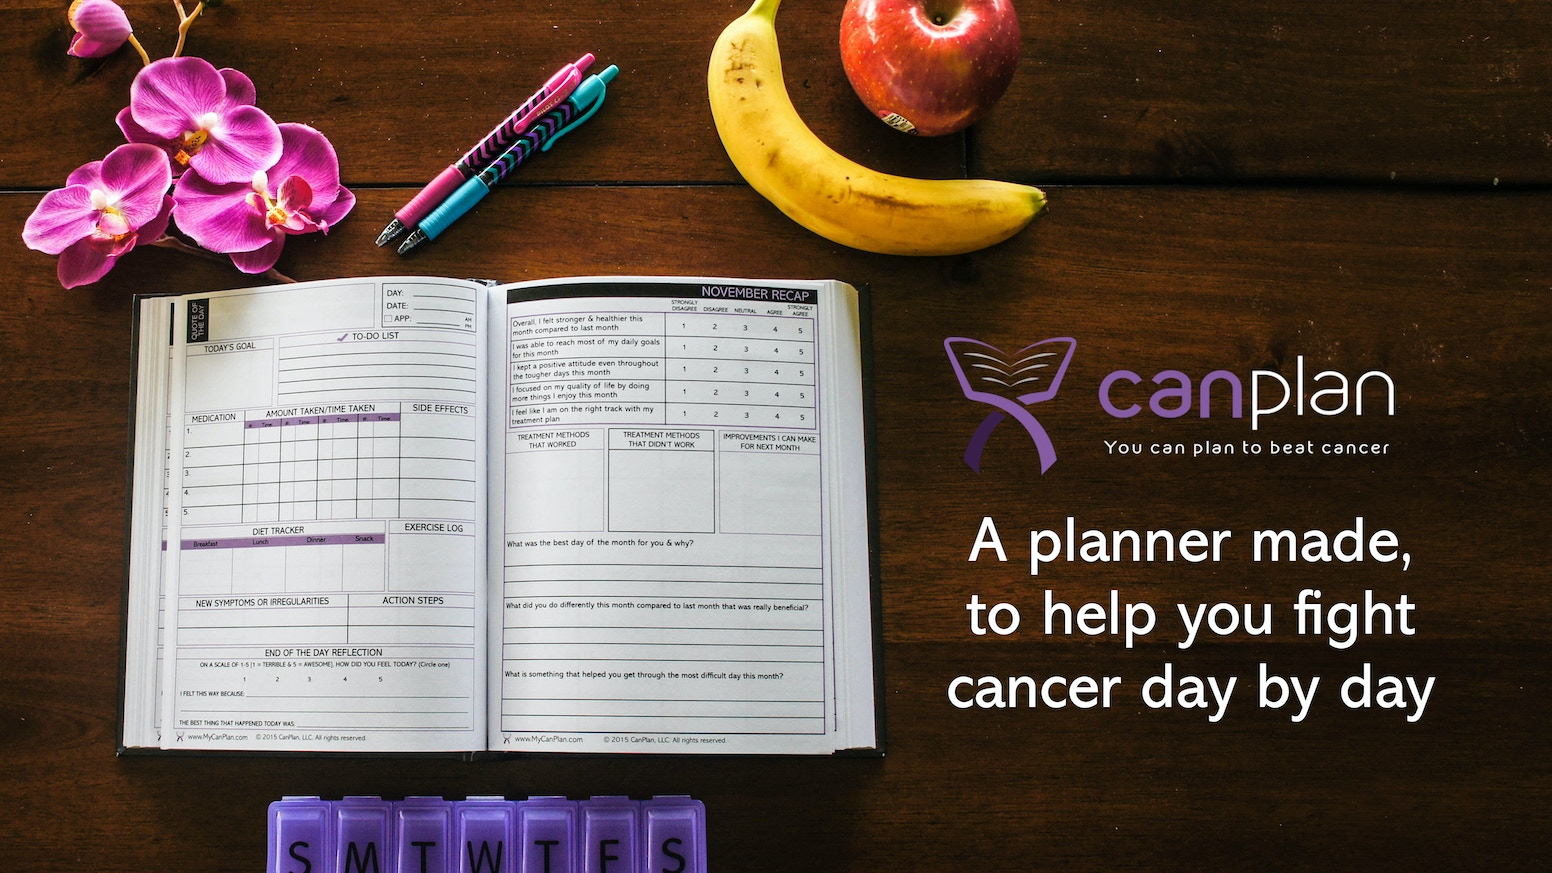 CanPlan isn't simply just a cancer planner: It's a roadmap to recovery, a book that'll put you in control. You Can Plan to beat cancer.